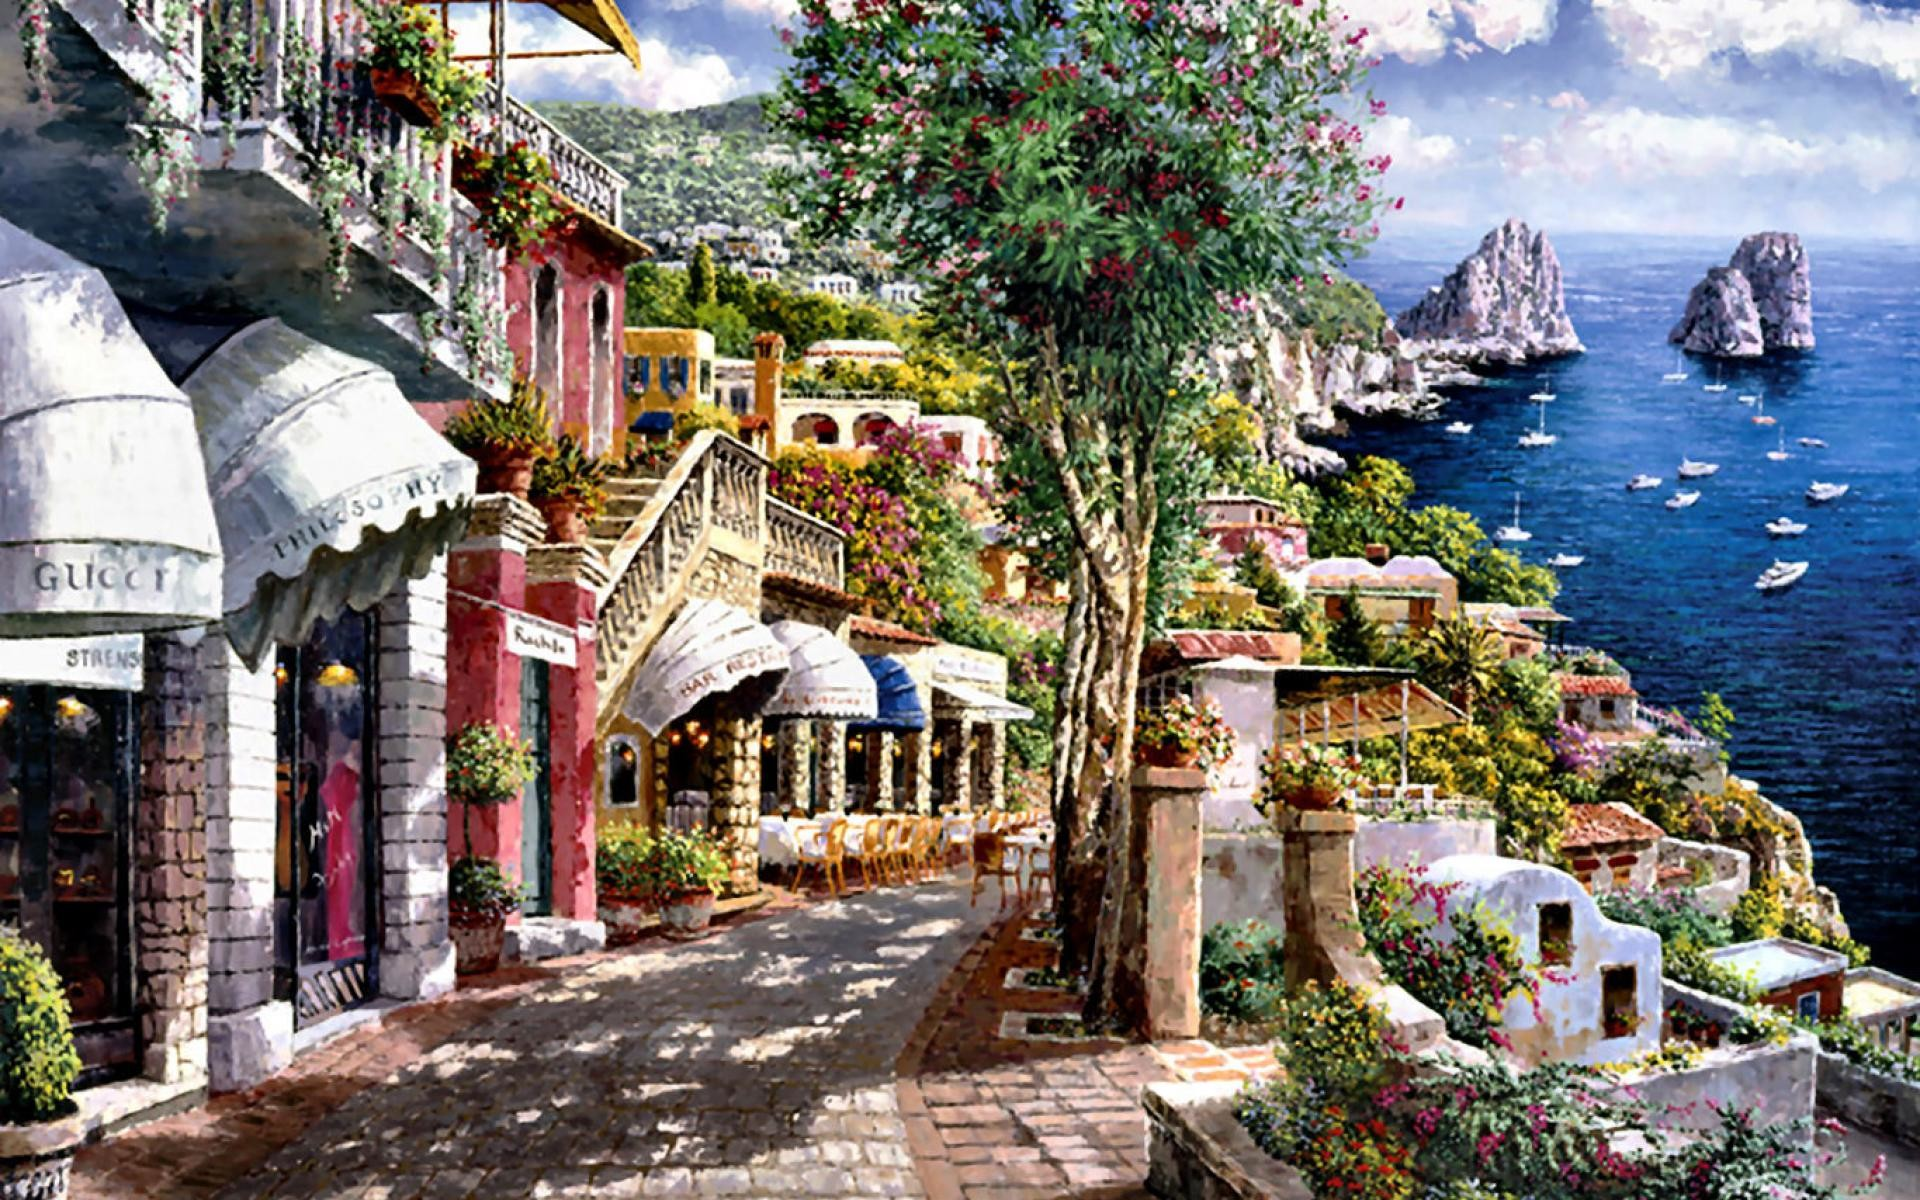 1920x1200 Bild: Shops Schöne Capri Italien wallpapers and stock photos. «